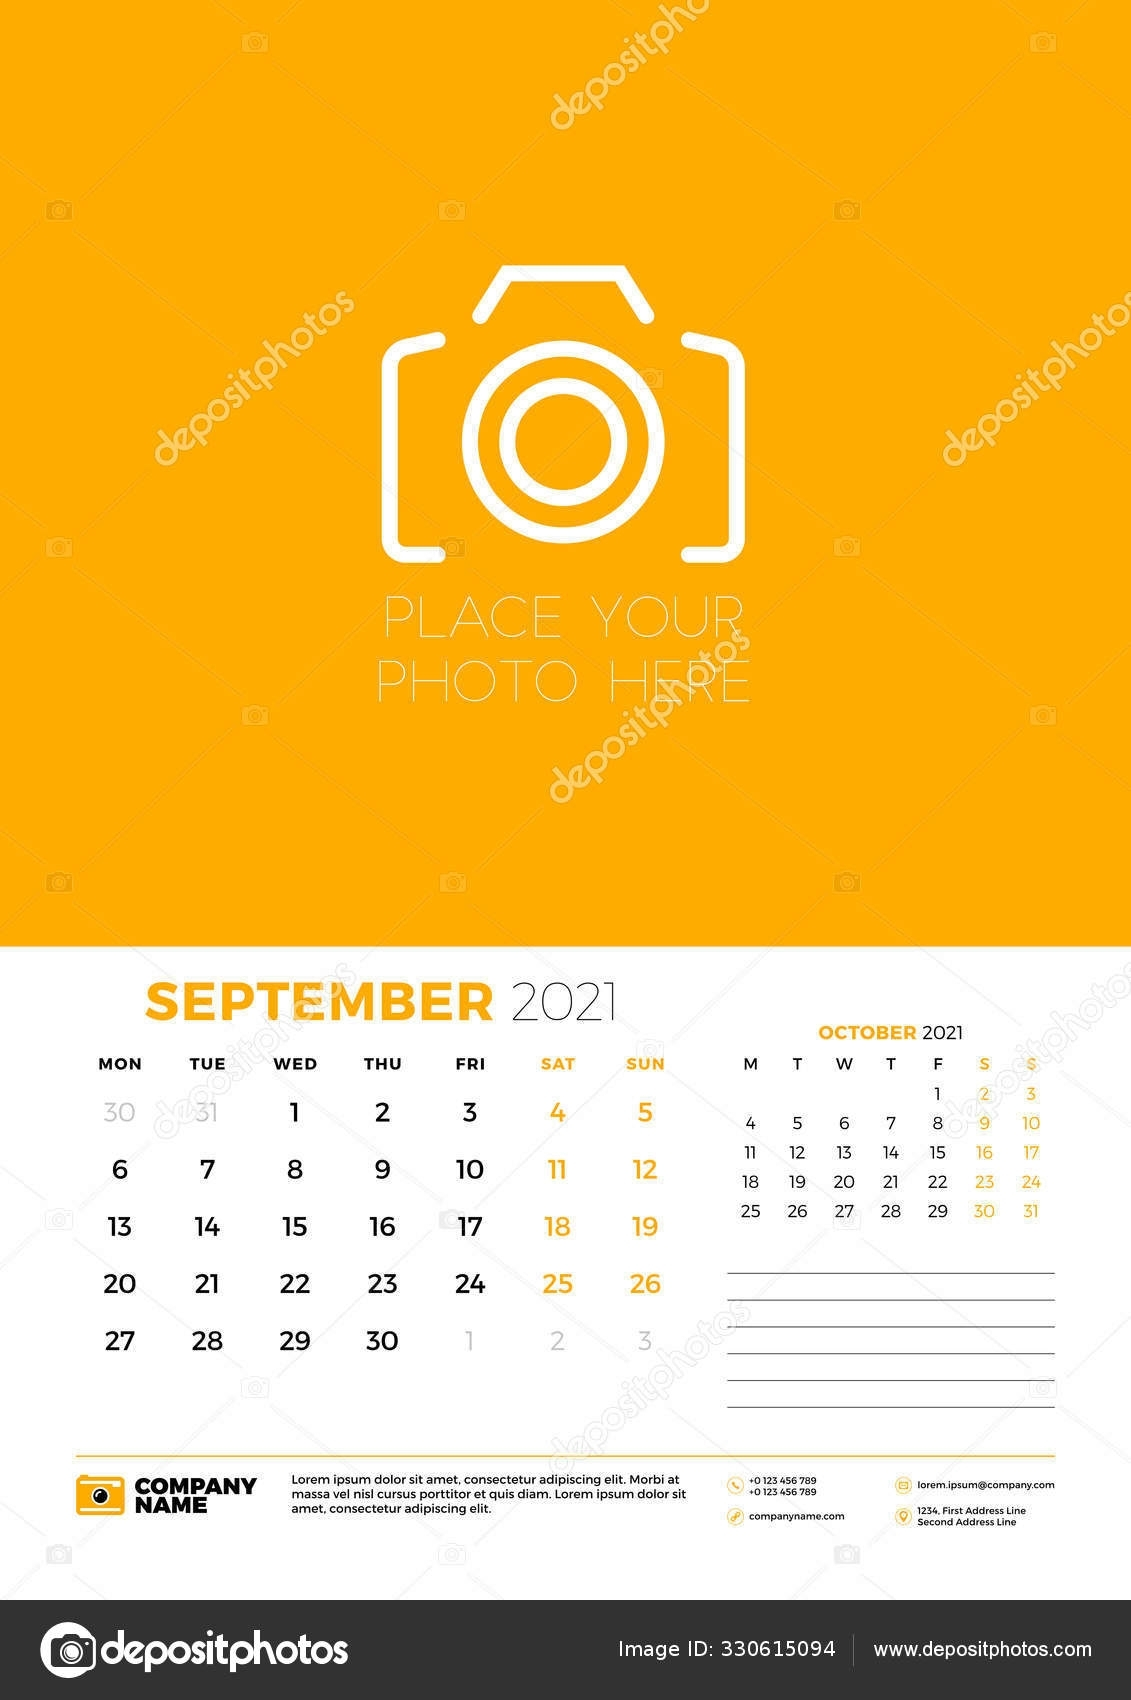 Calendar For September 2021. Week Starts On Monday. Wall Calendar Planner  Template. Vector Illustration 330615094